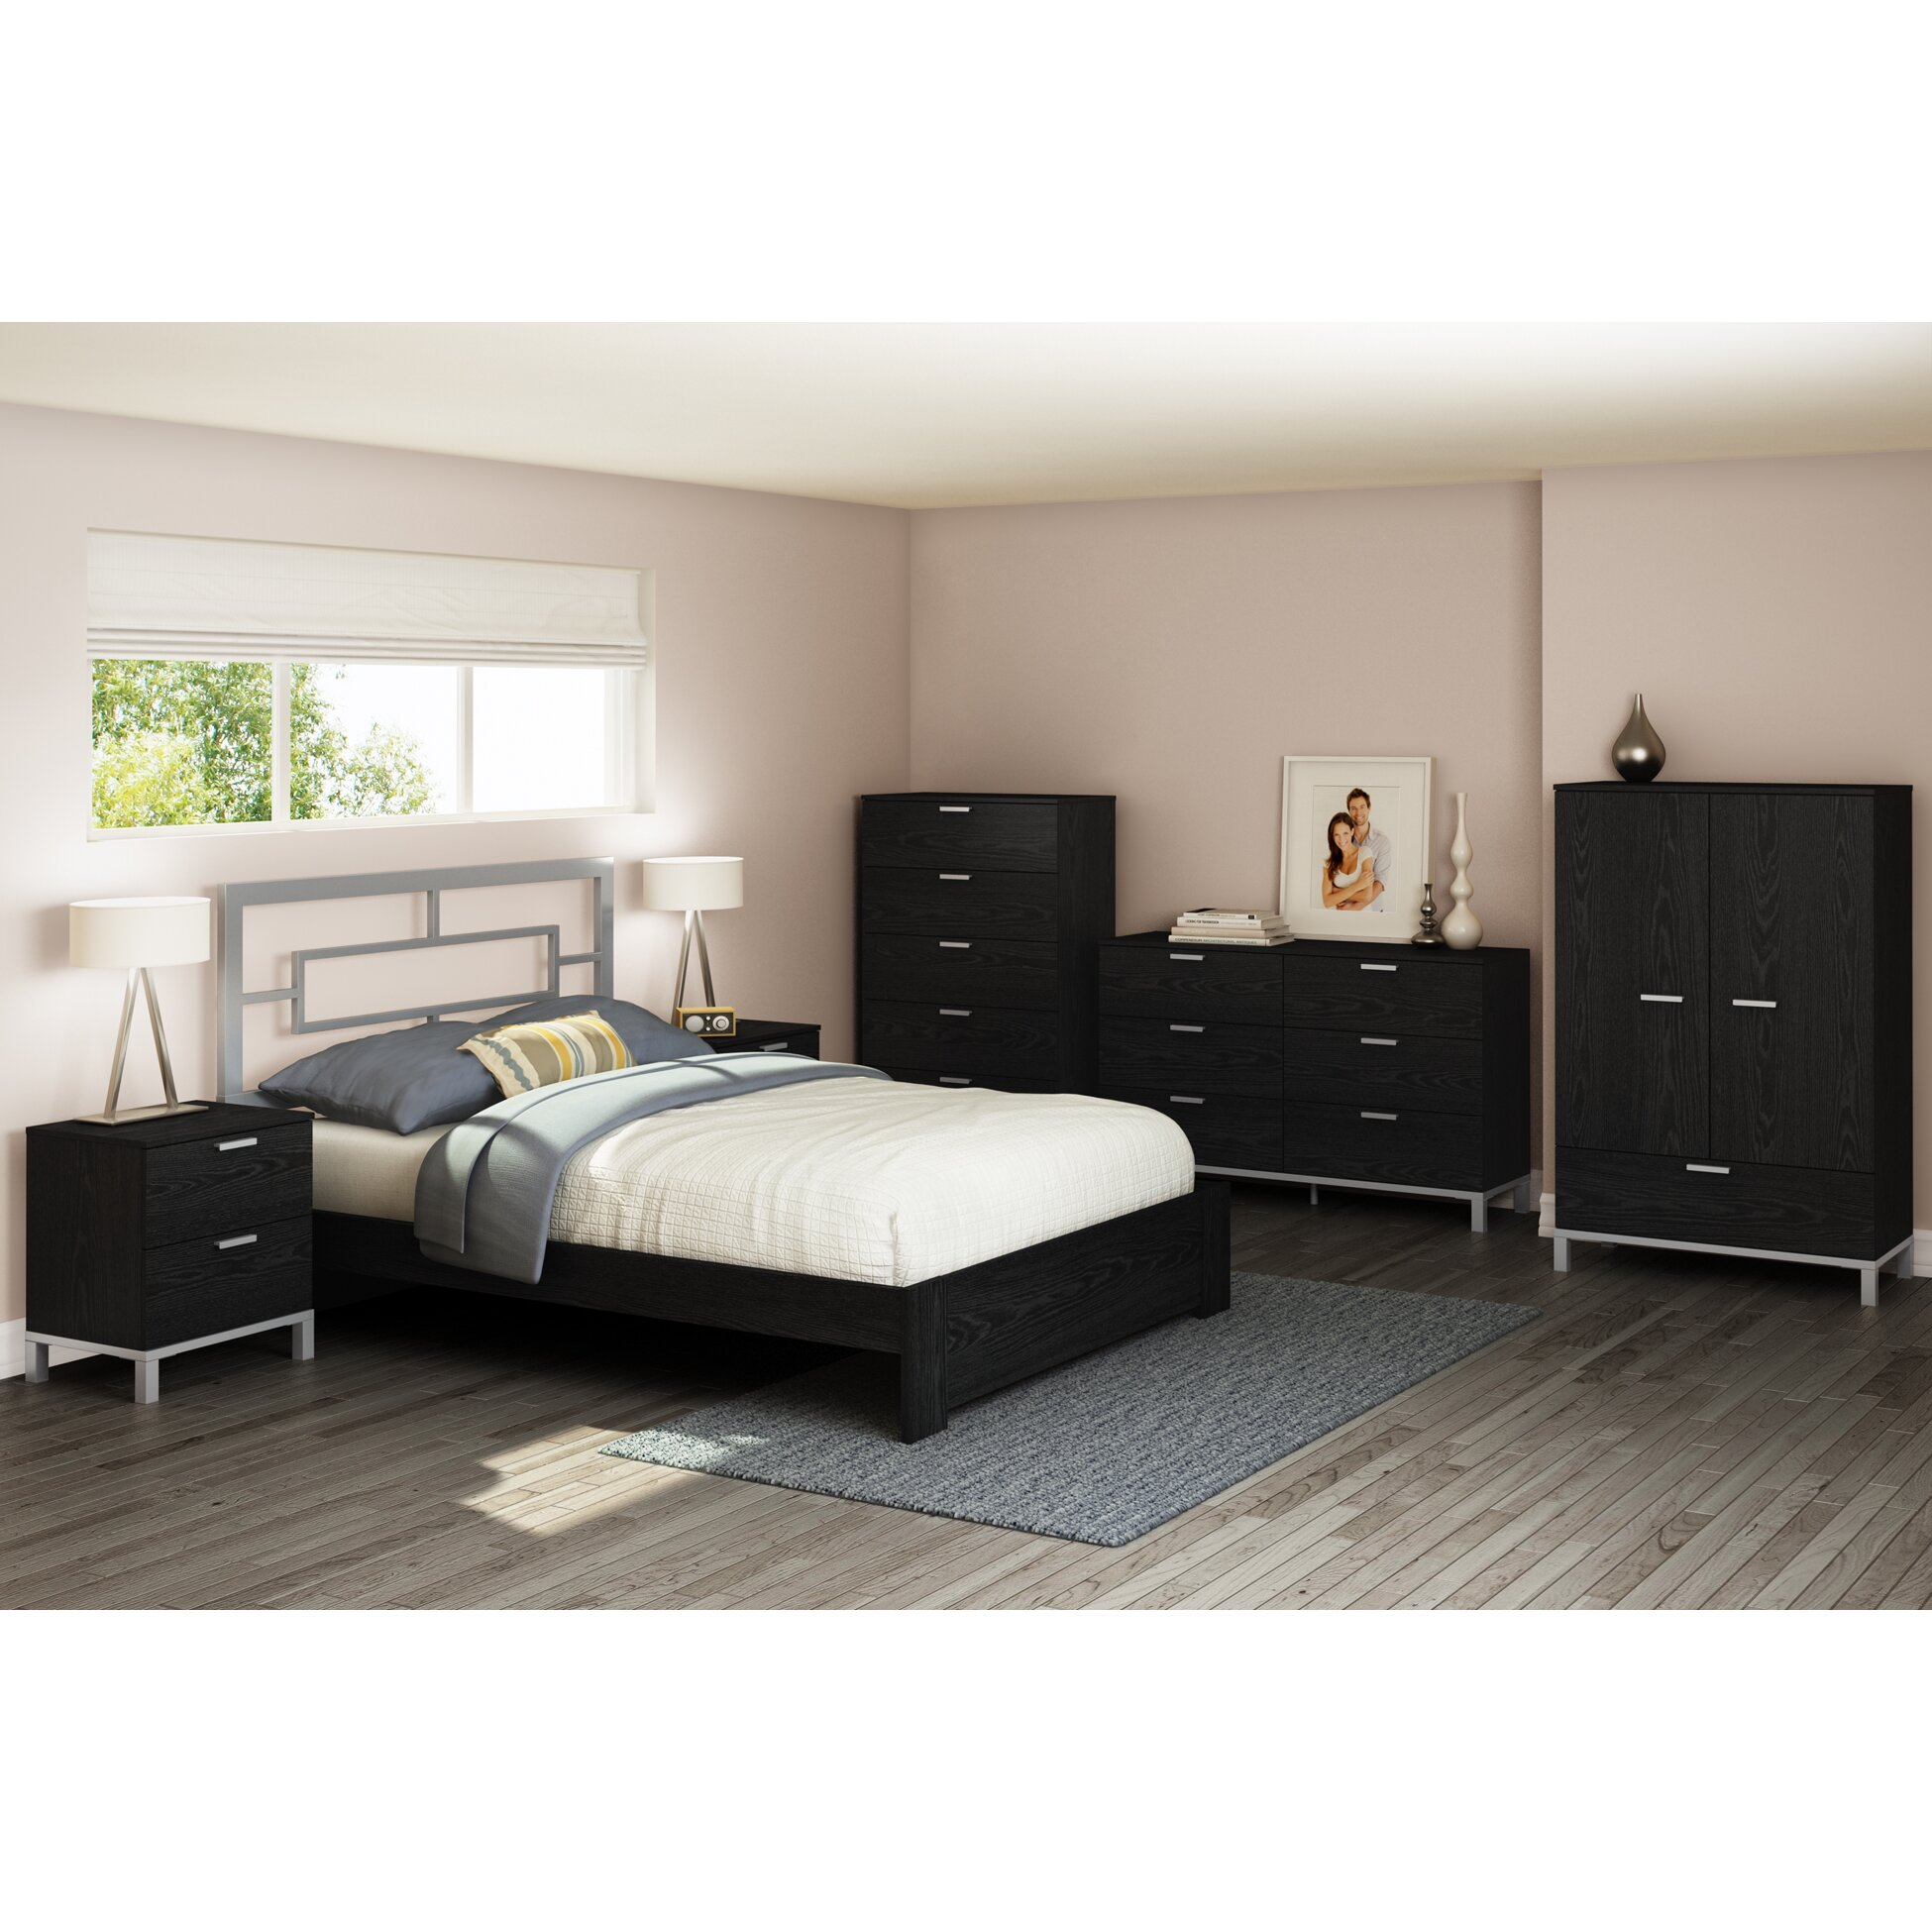 South Shore Bedroom Furniture South Shore Flexible Platform Bed Reviews Wayfair